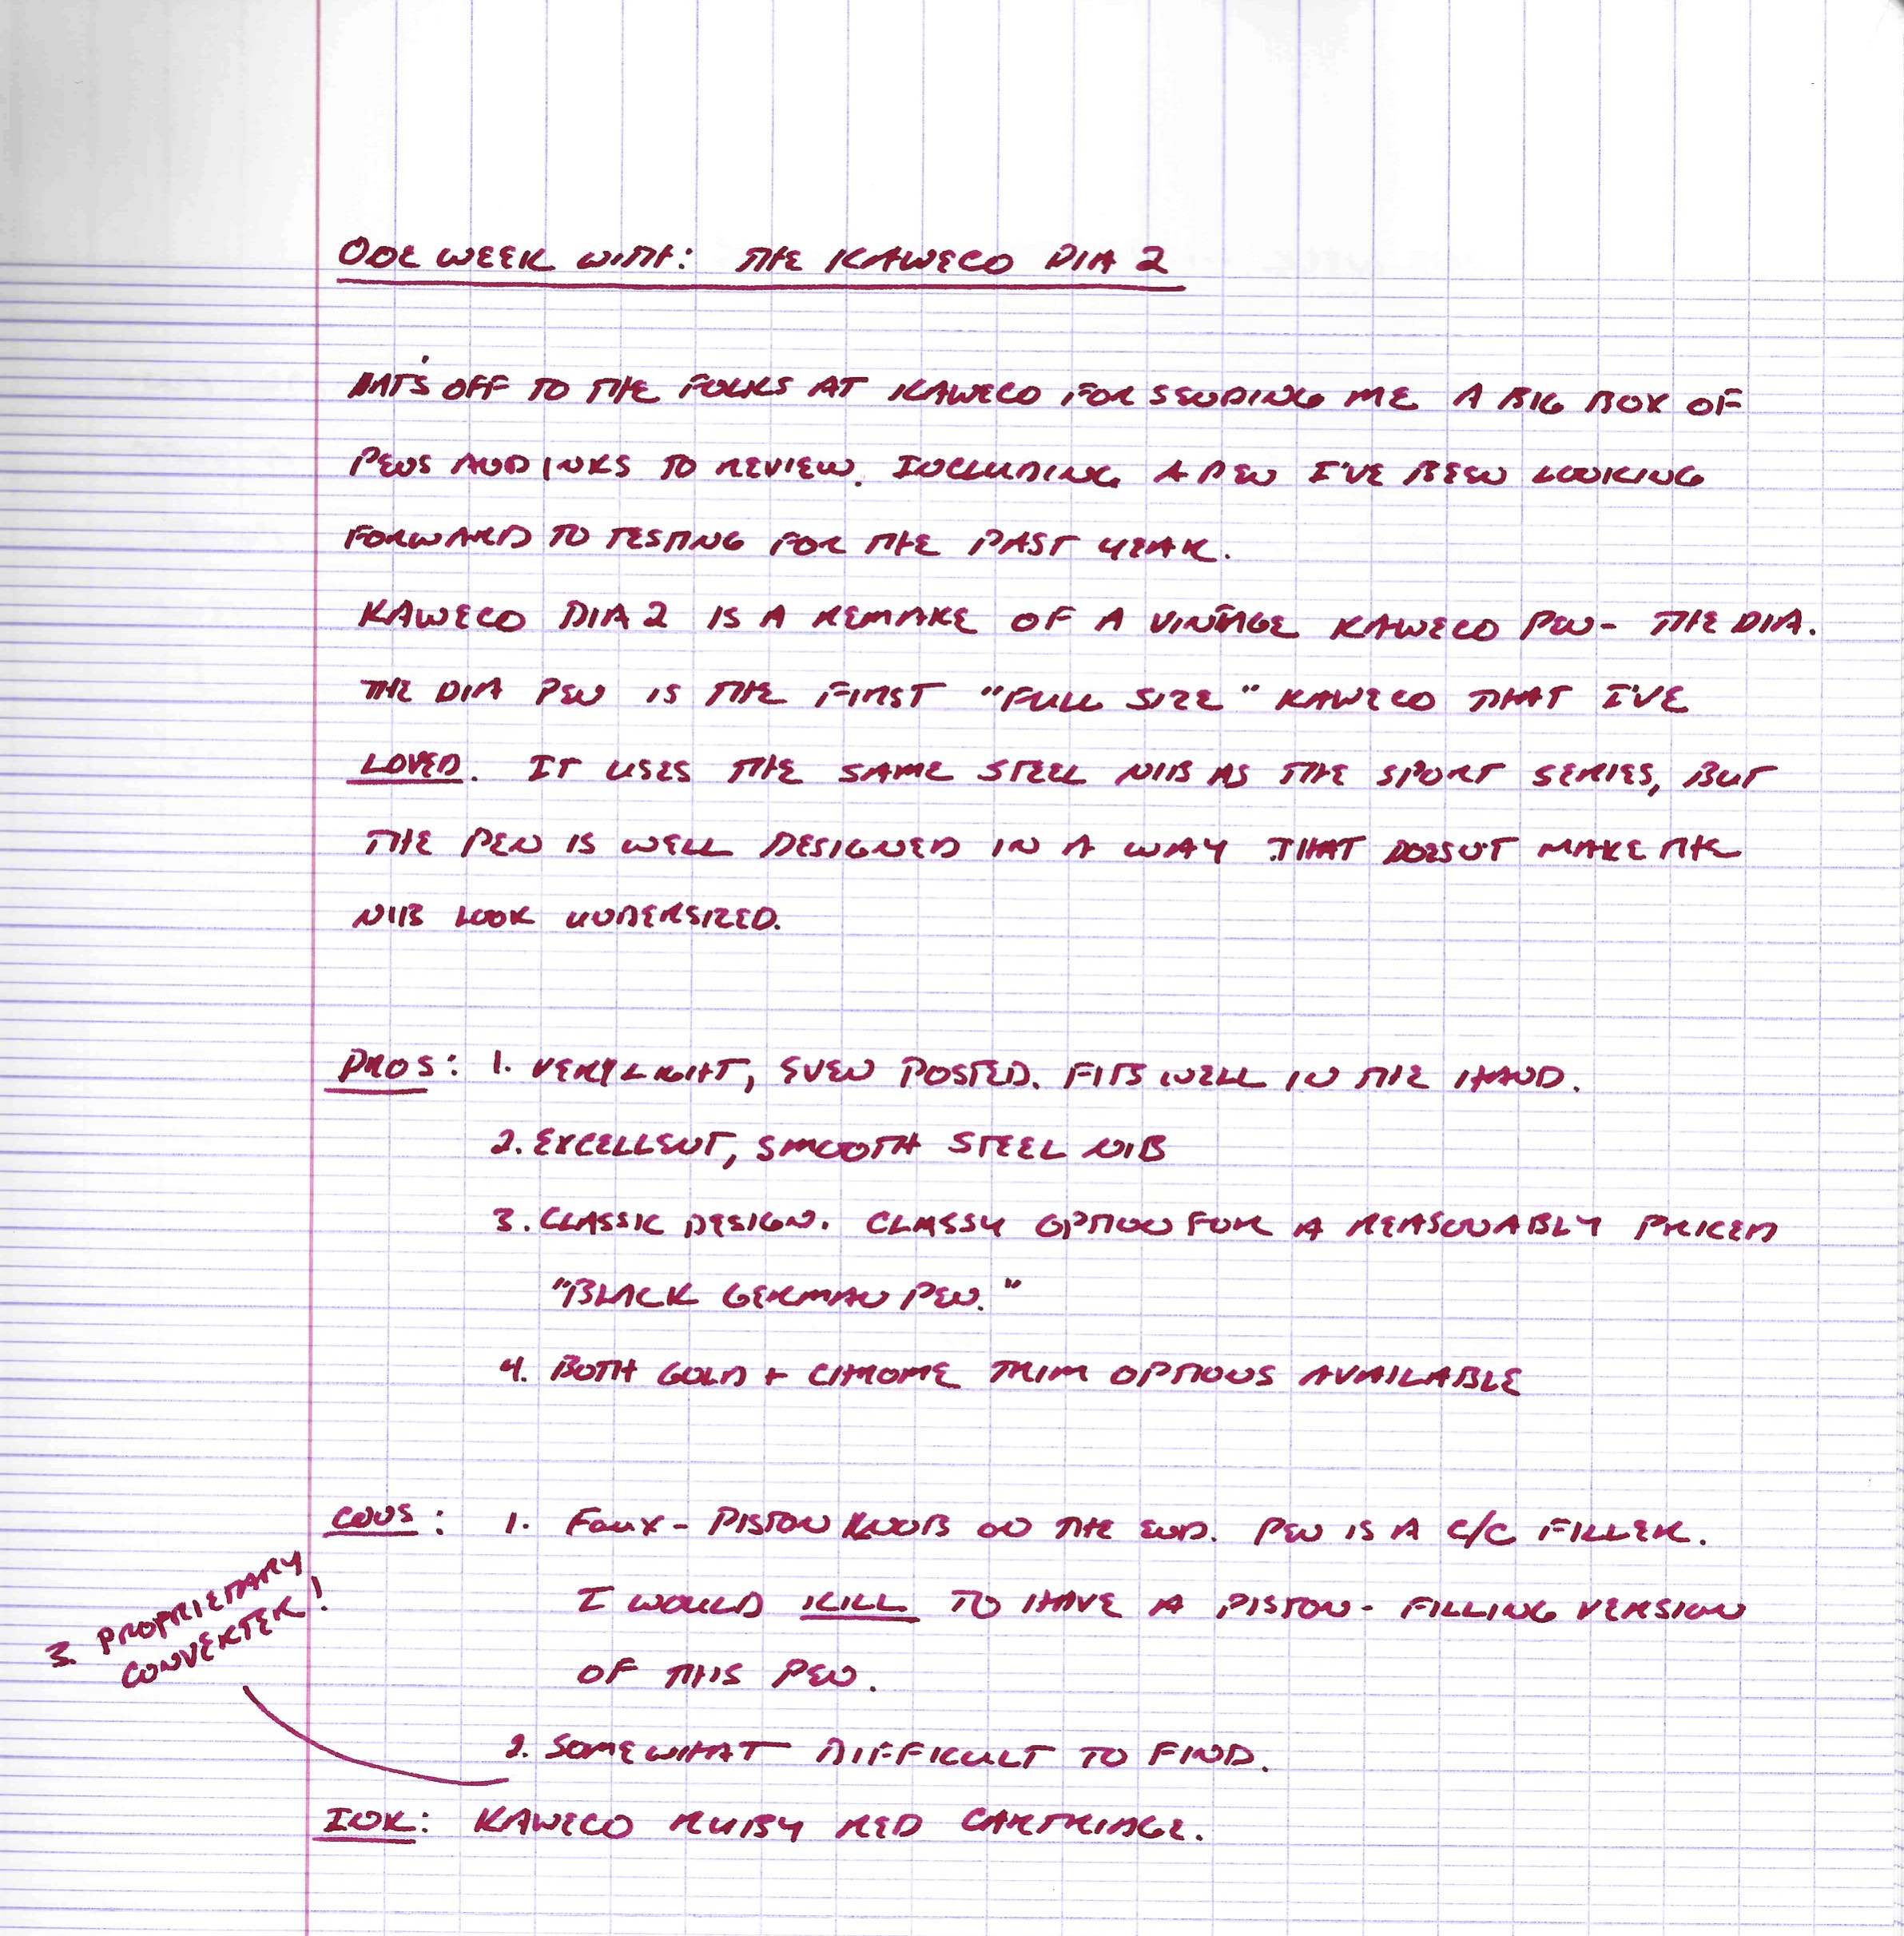 Handwritten ink review in Kaweco Ruby Red